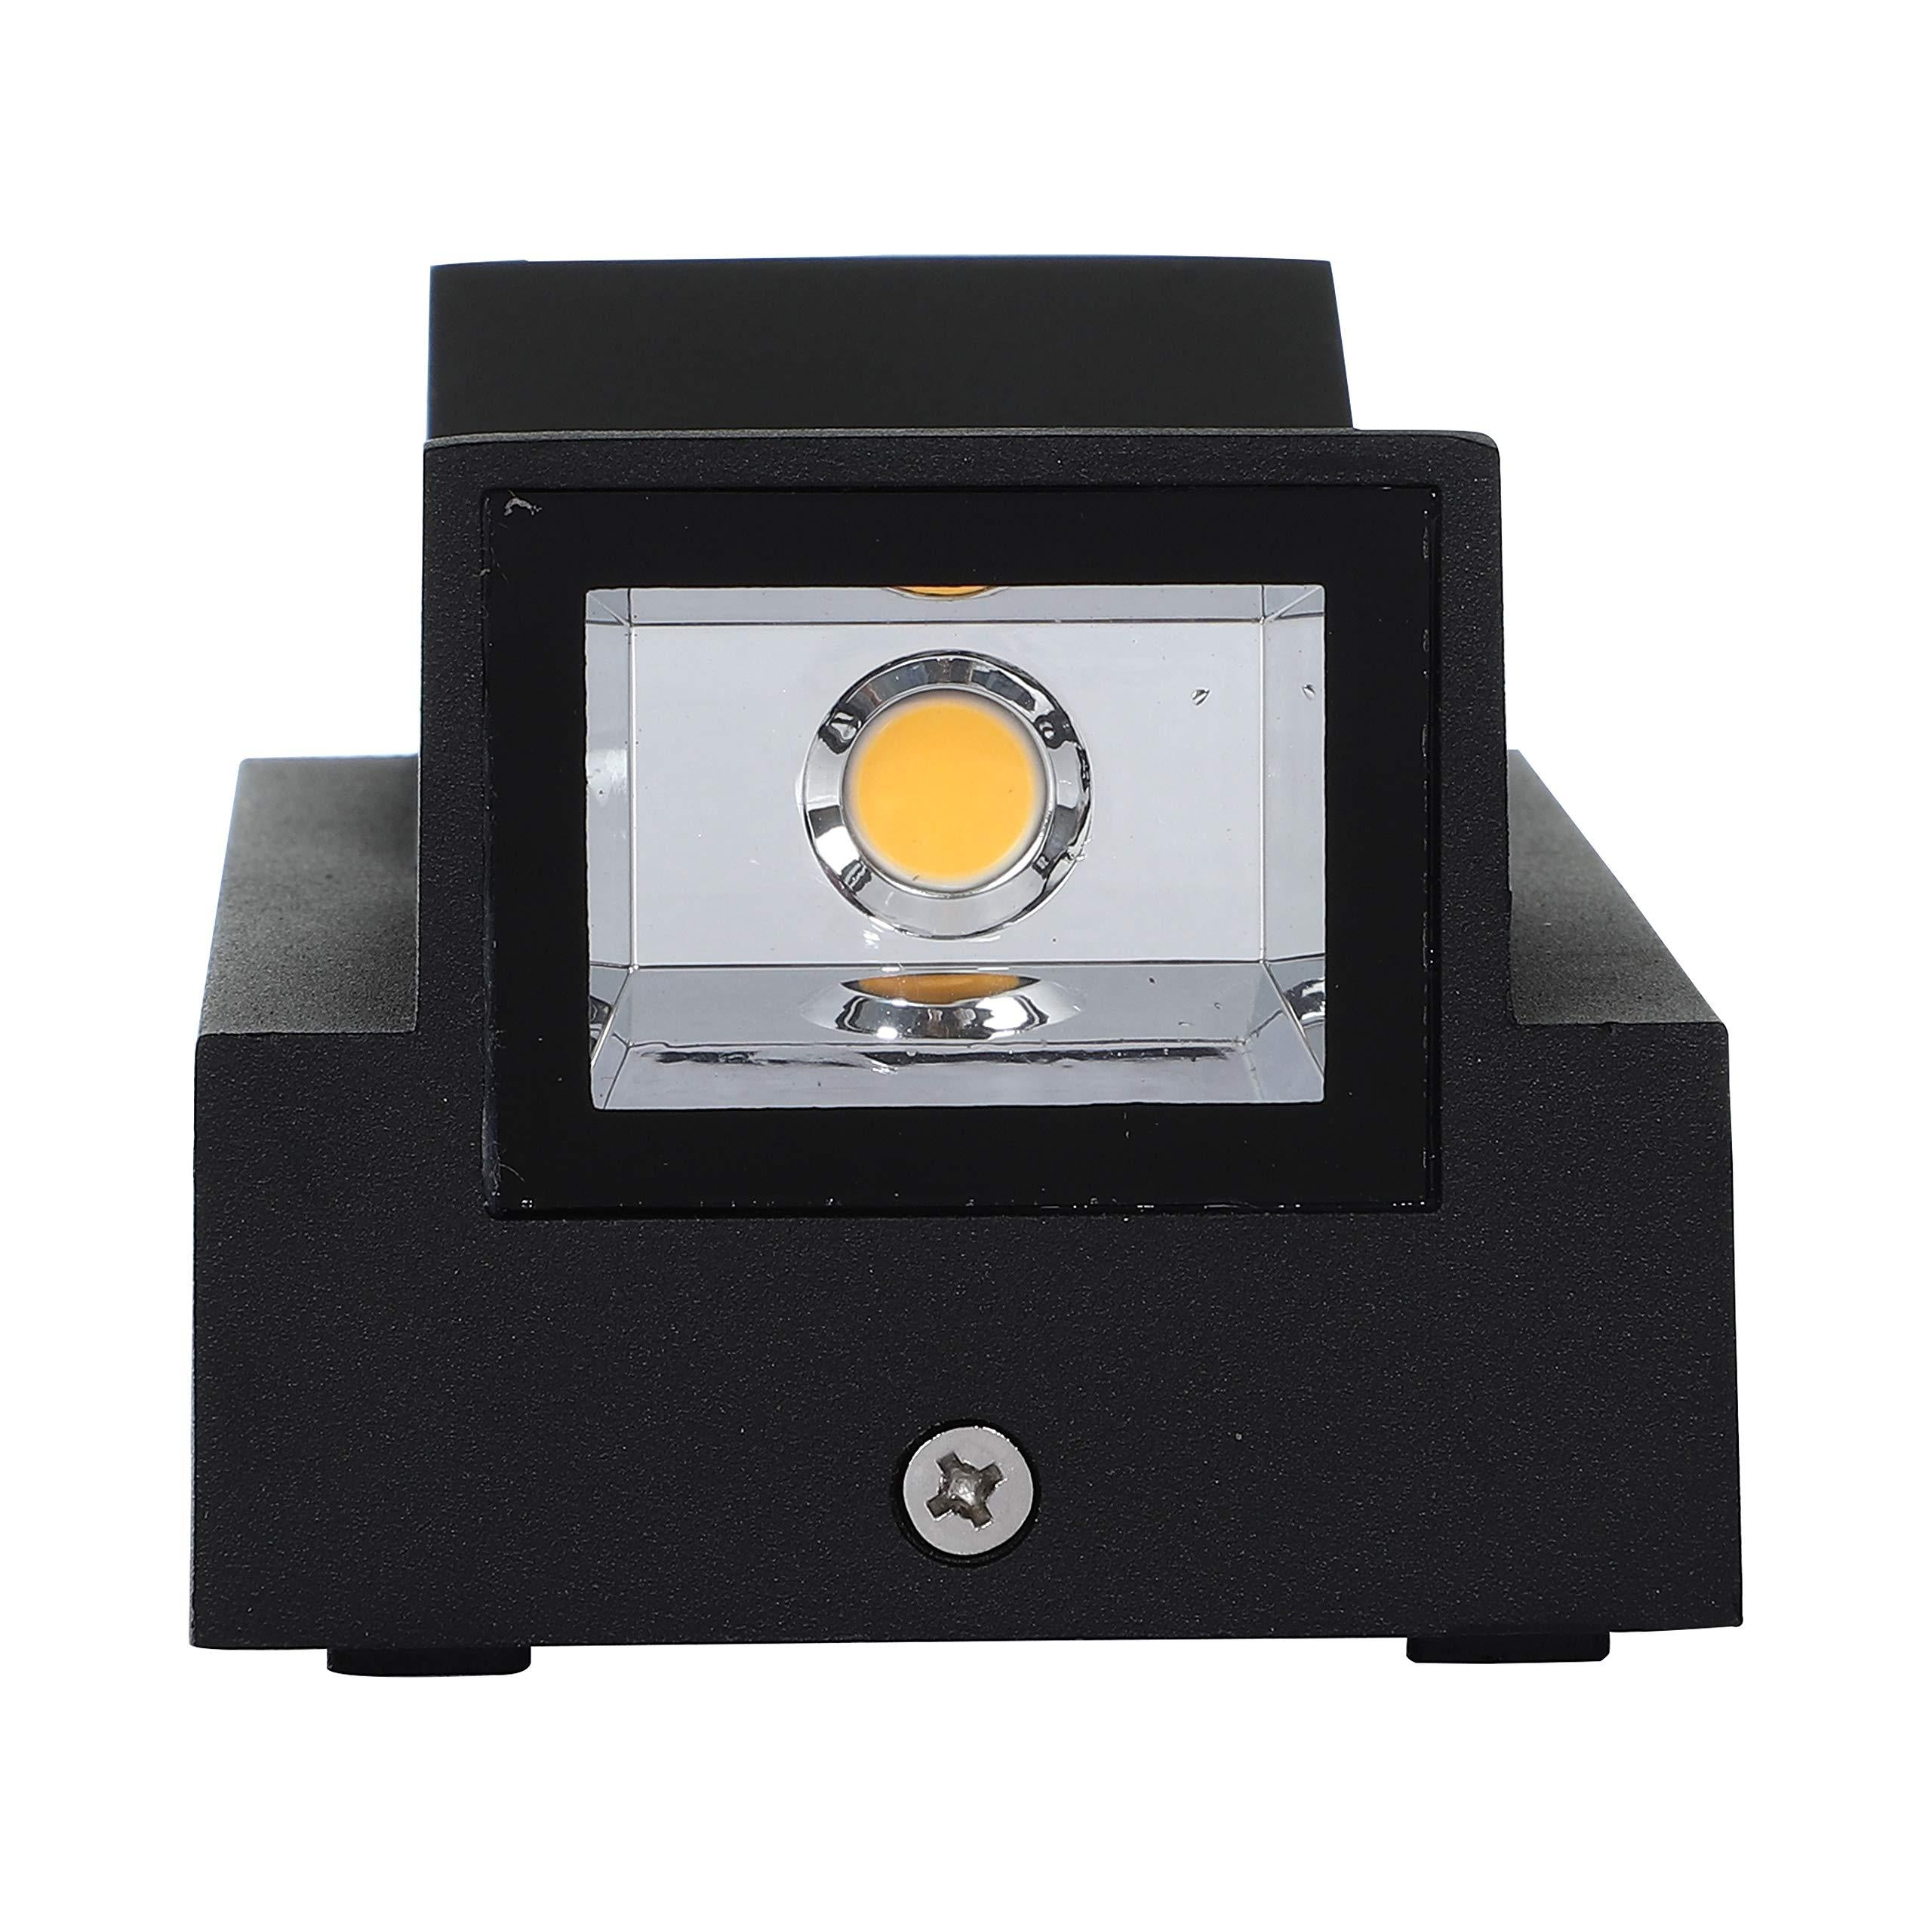 Outdoor UP-Down Light, Wall Mounted Weatherproof